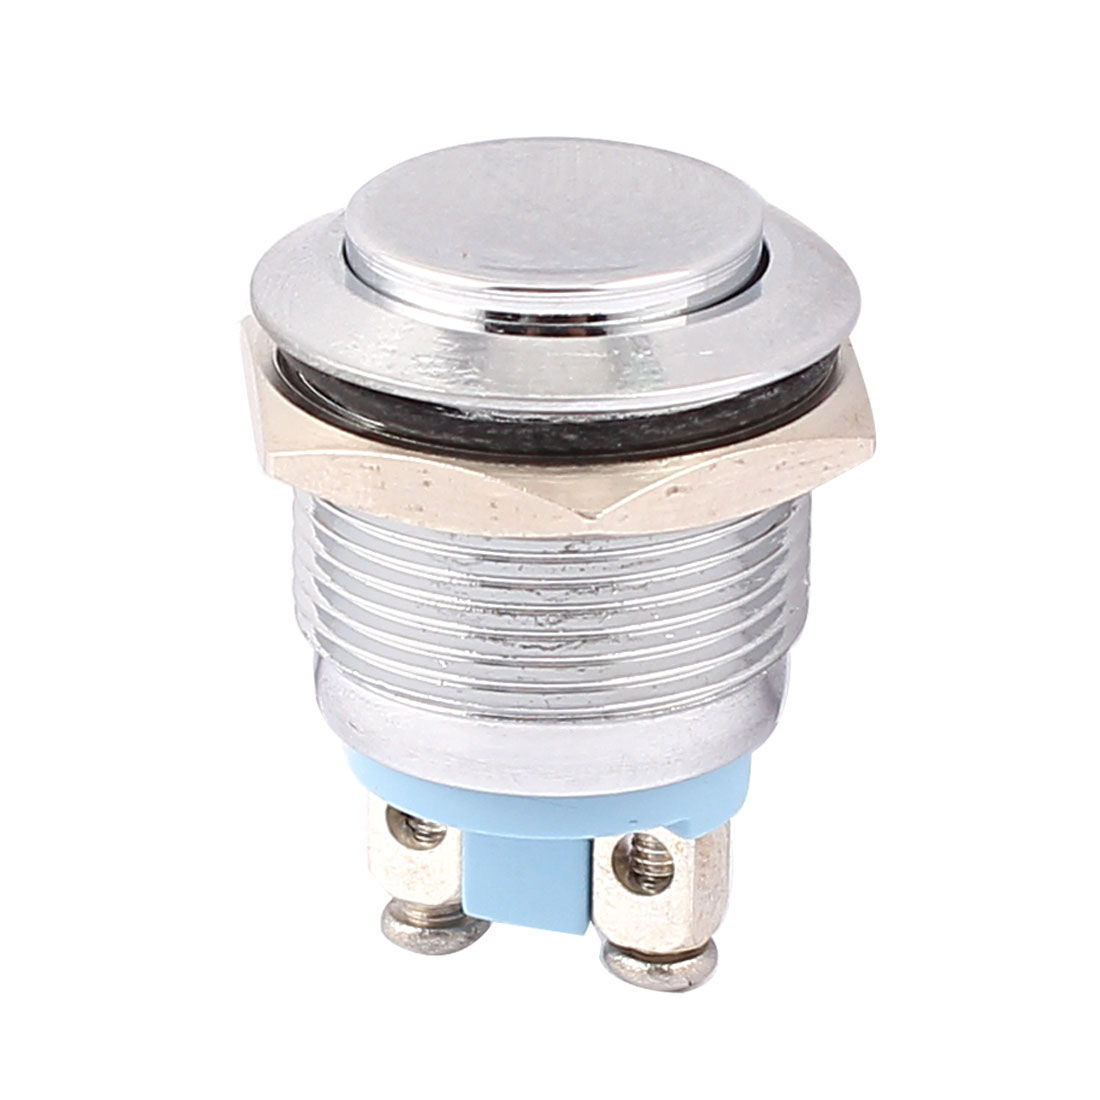 19mm Mounted Thread SPST High Head Momentary Push Button Switch